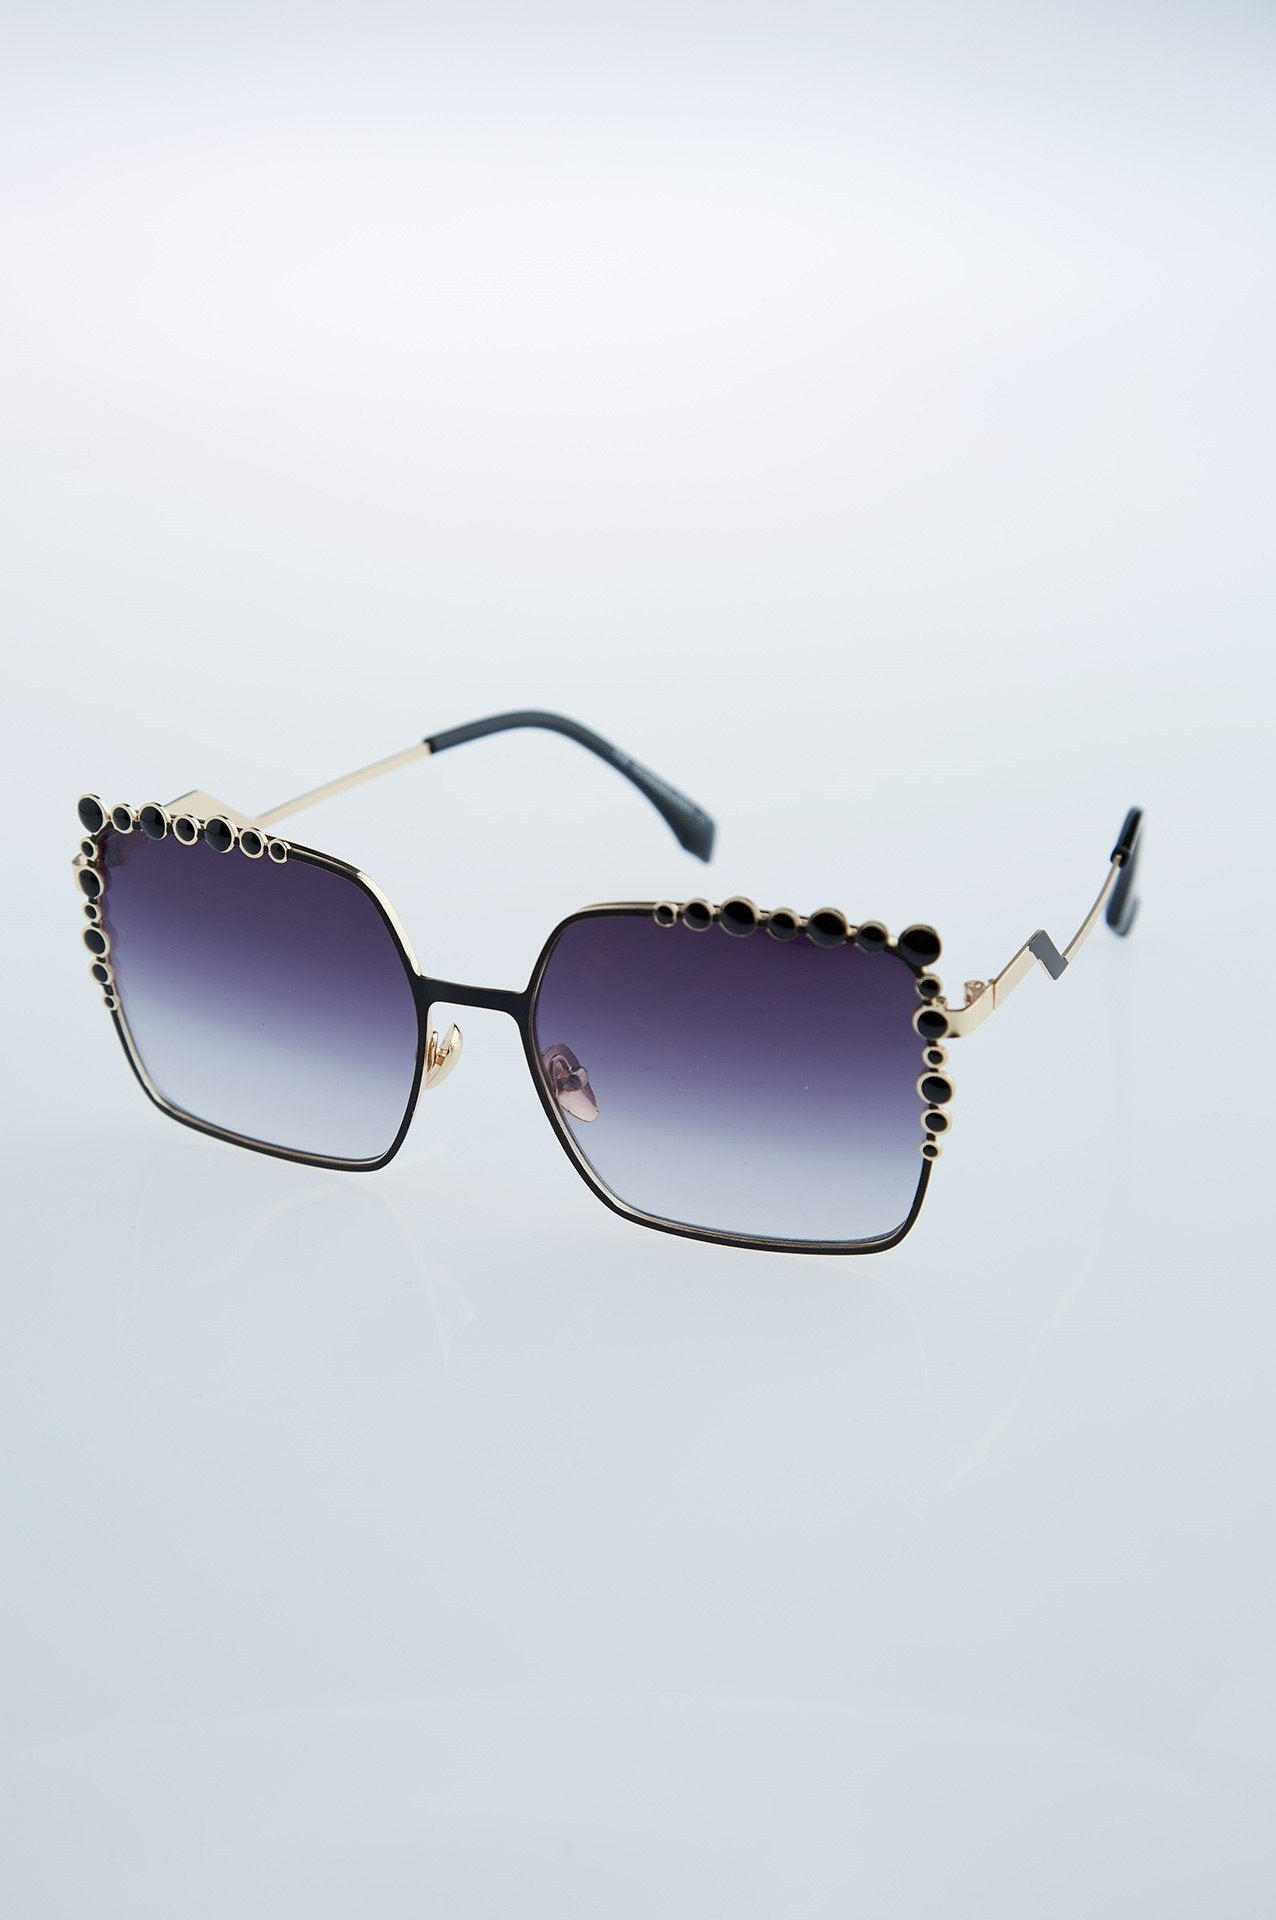 Detailed Black Sunglasses